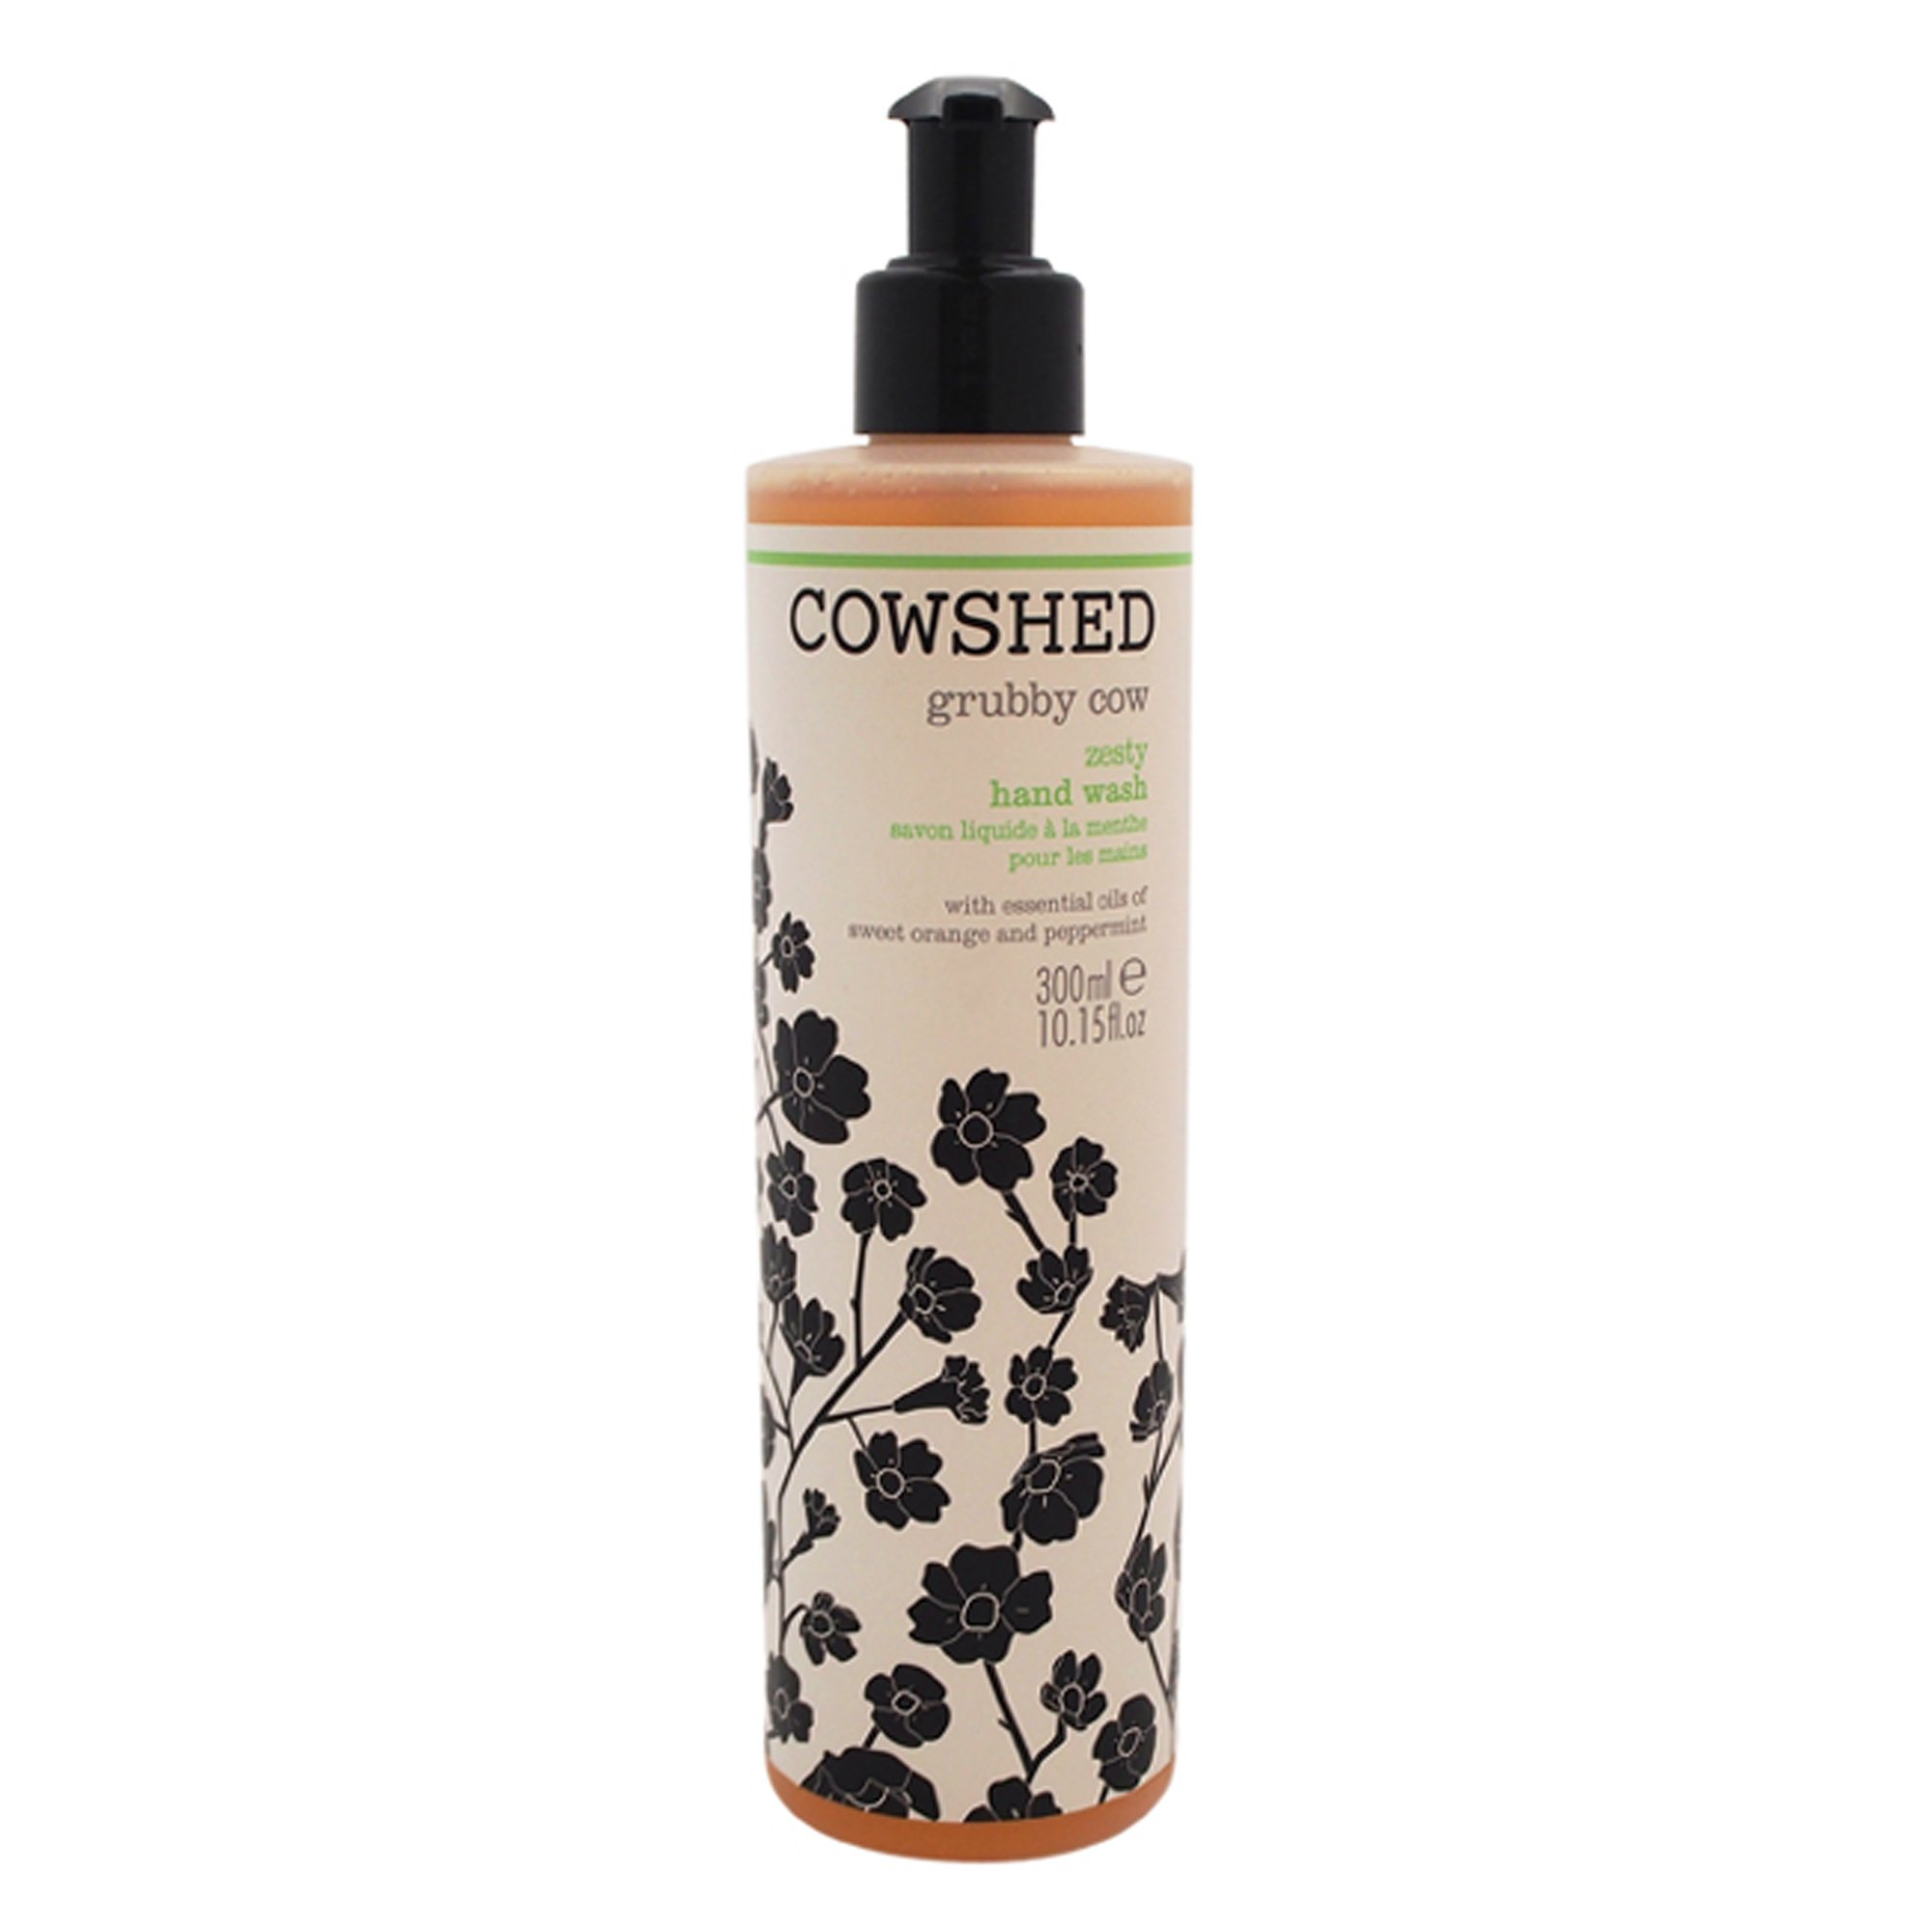 Cowshed Grubby Cow Zesty Hand Wash for Women, 10.15 Ounce